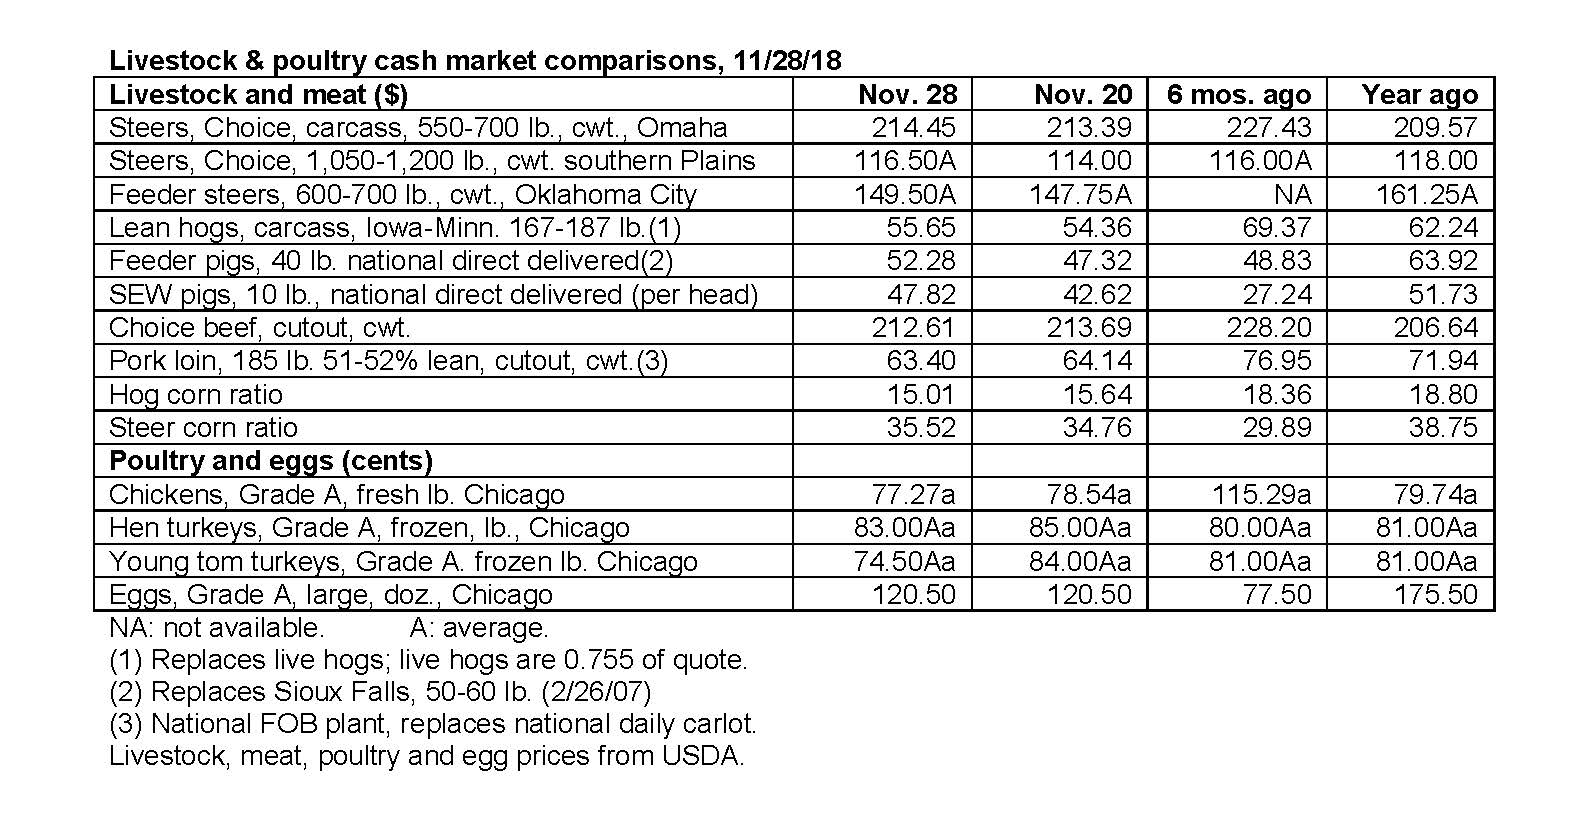 November 28 2018 Livestock cash markets.jpg